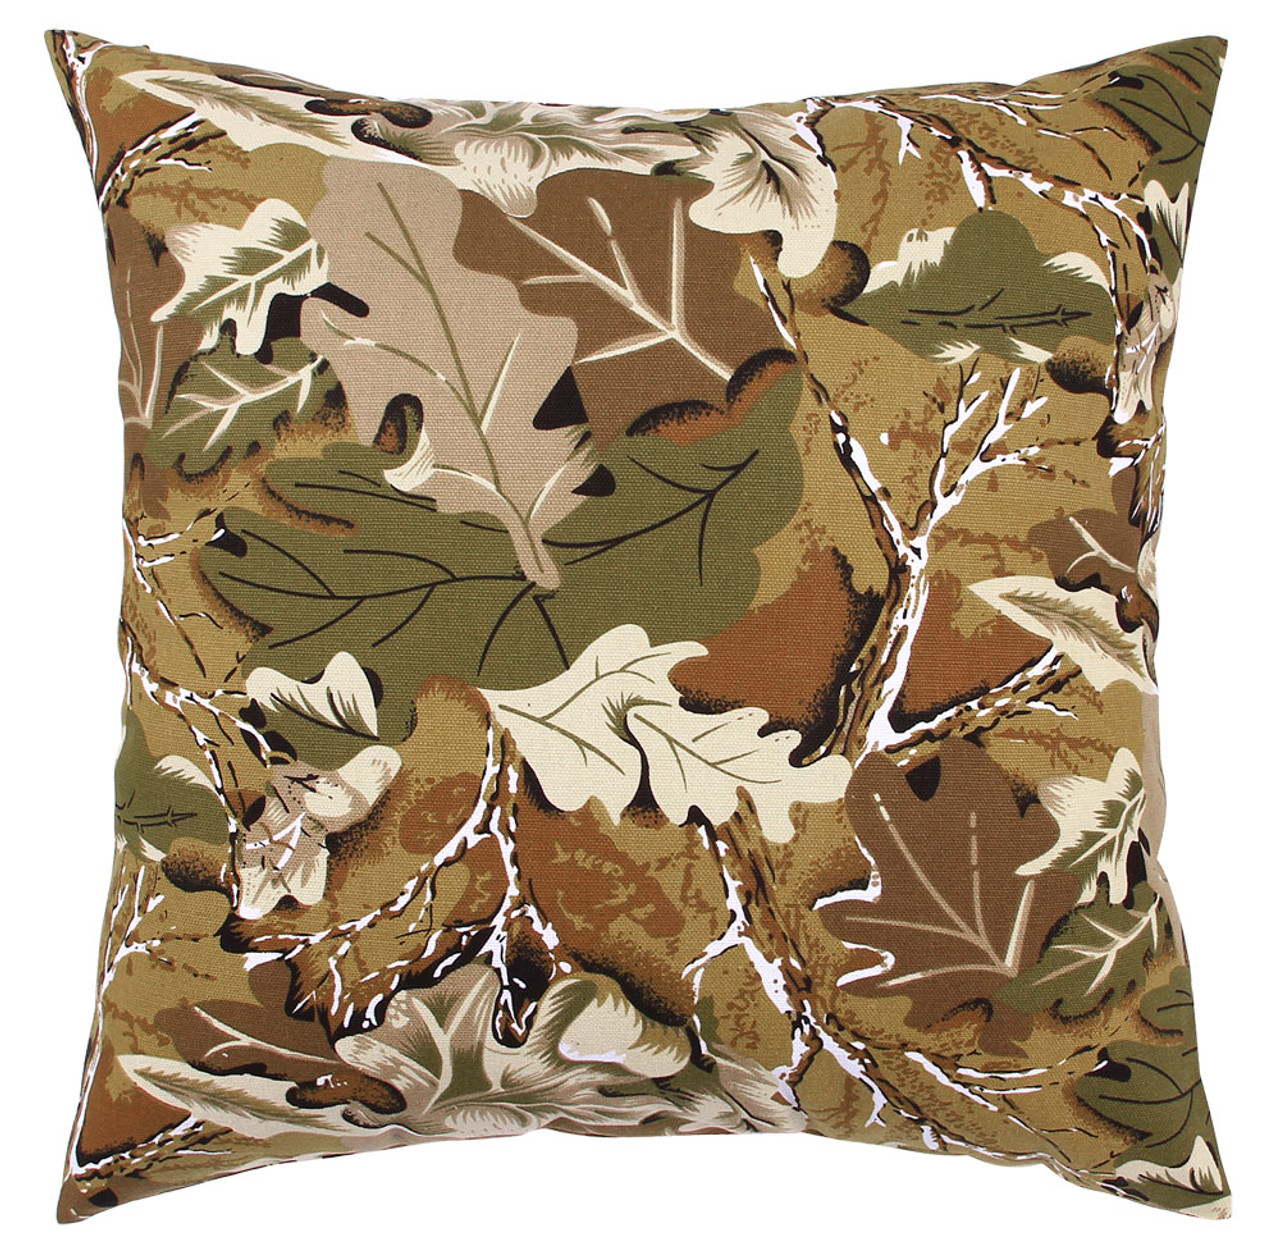 tangdepot camouflage throw pillow cover camo pillow cases 100 cotton canvas handmade many colors sizes avaliable